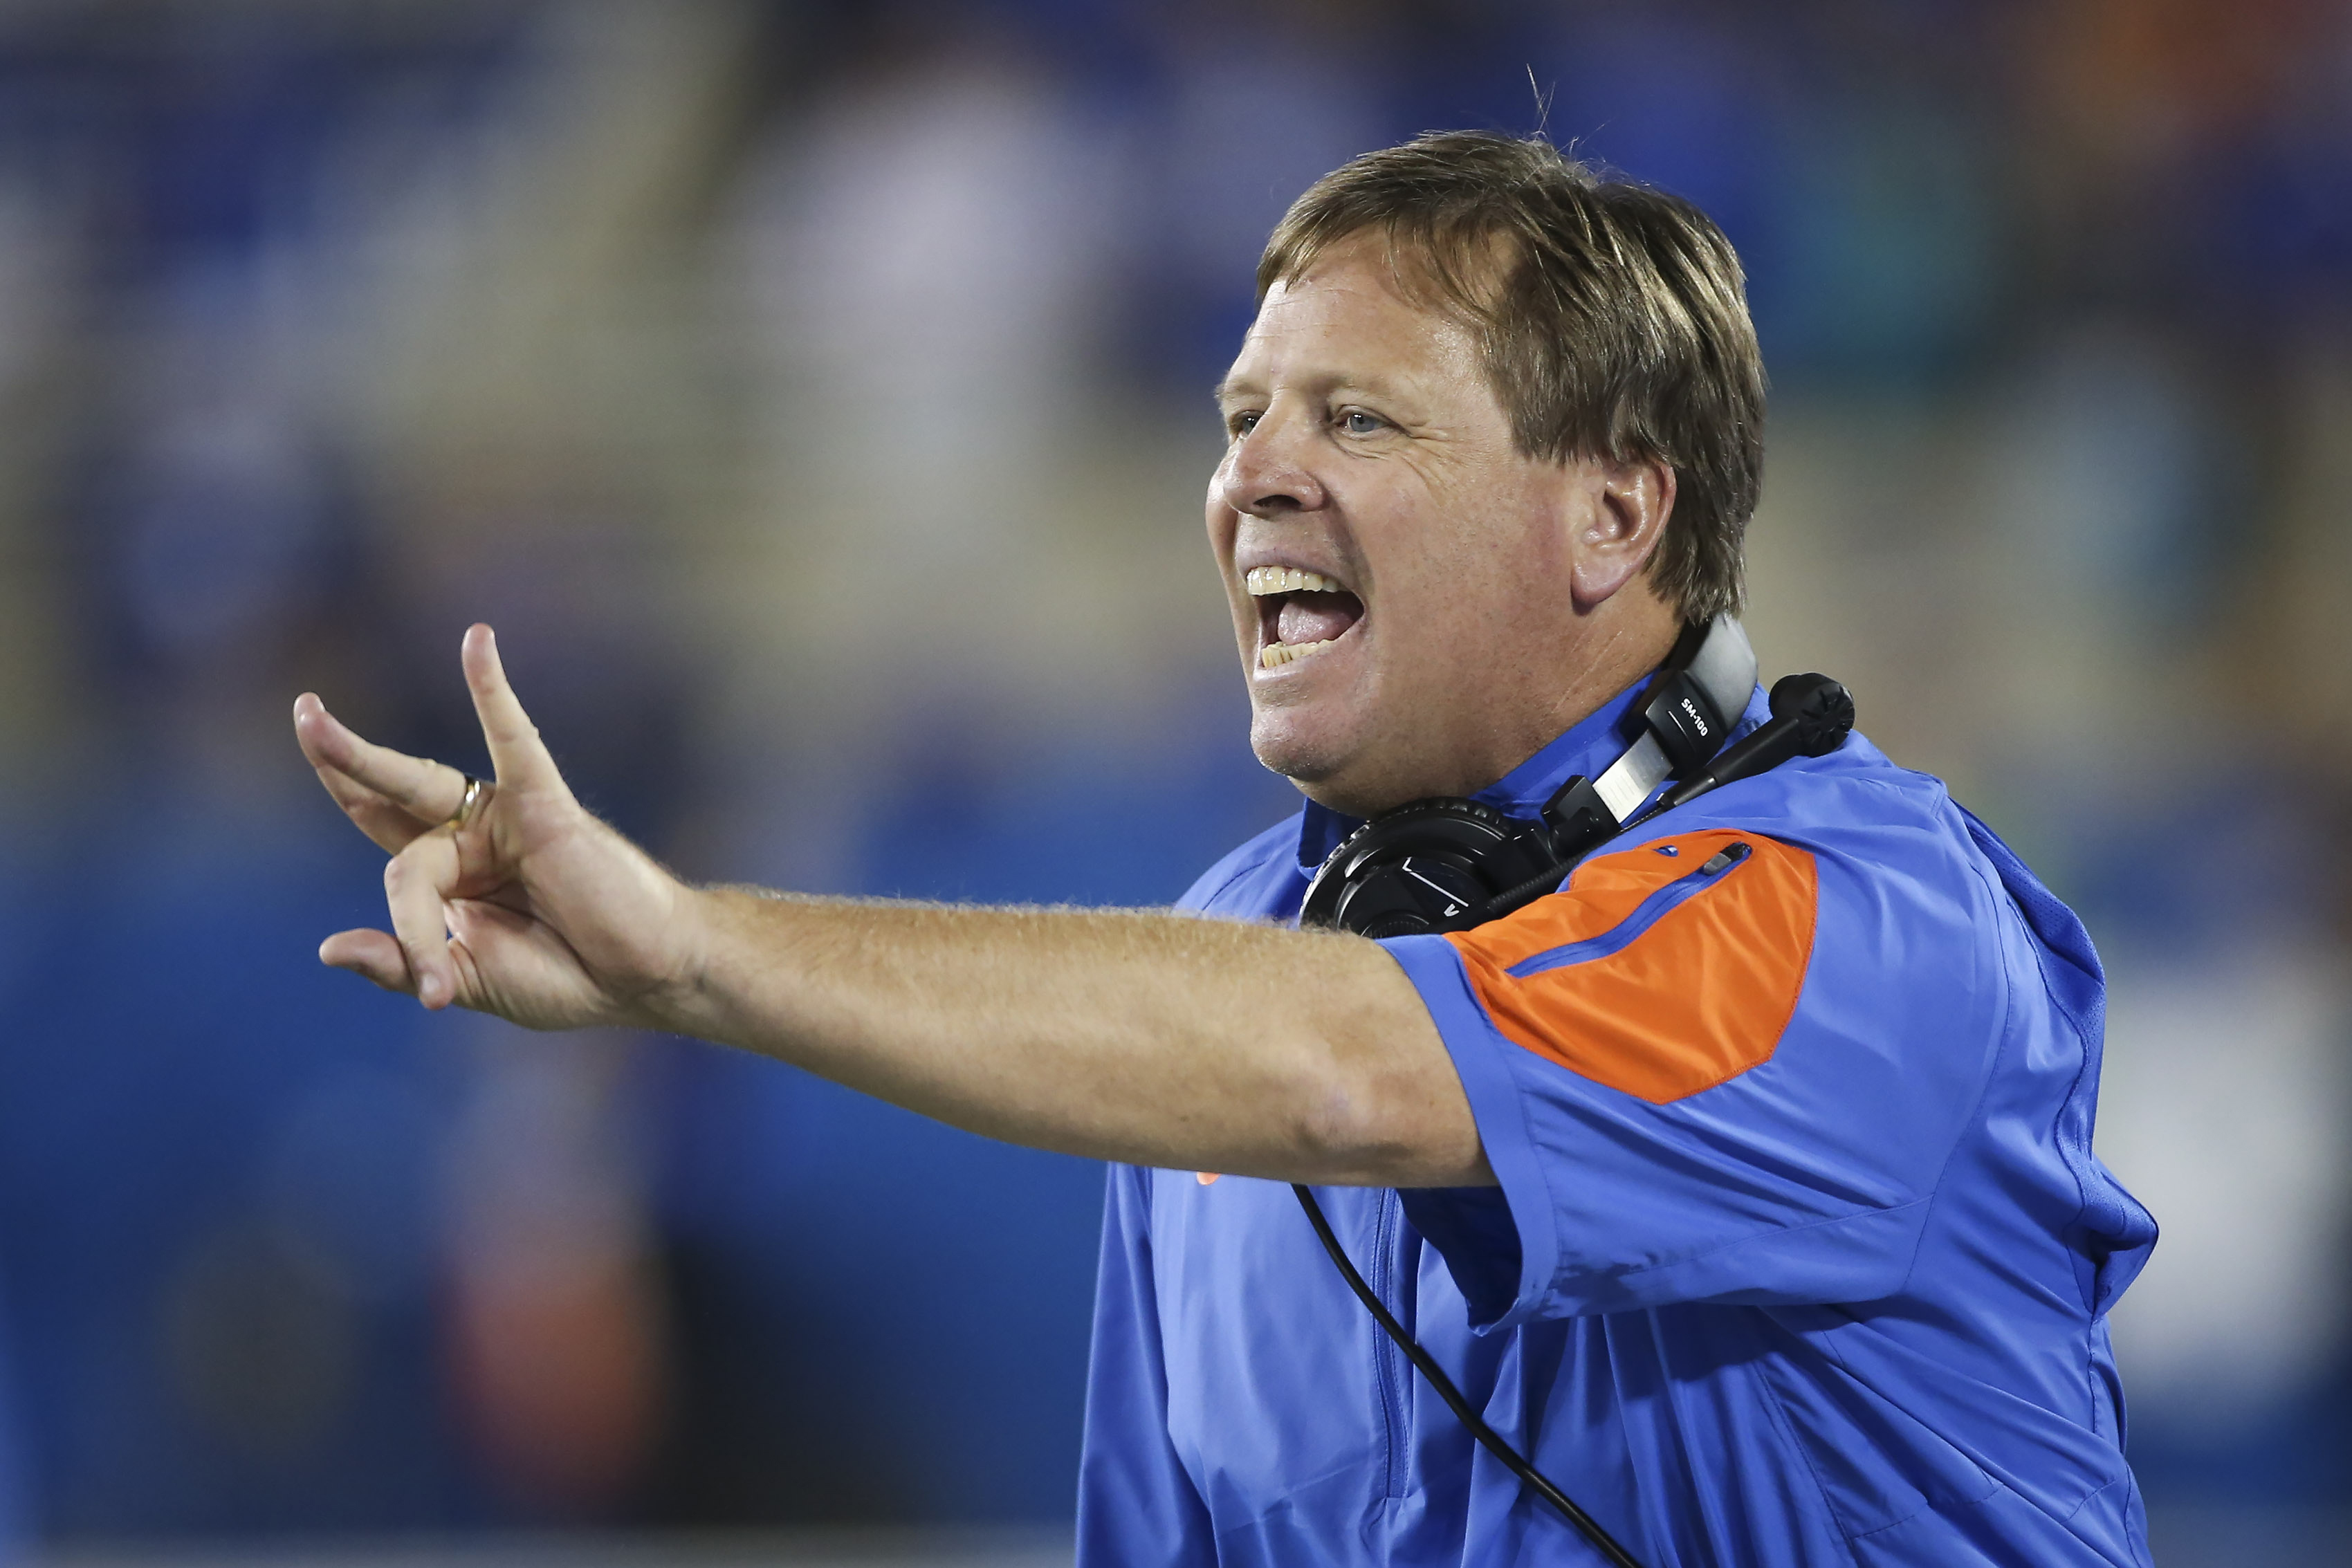 FILE - In this Sept. 19, 2015, file photo, Florida head coach Jim McElwain instructs his team during the second half of an NCAA college football game against Kentucky, in Lexington, Ky.  McElwain has genuine reverence for Alabama's Nick Saban. It's obviou